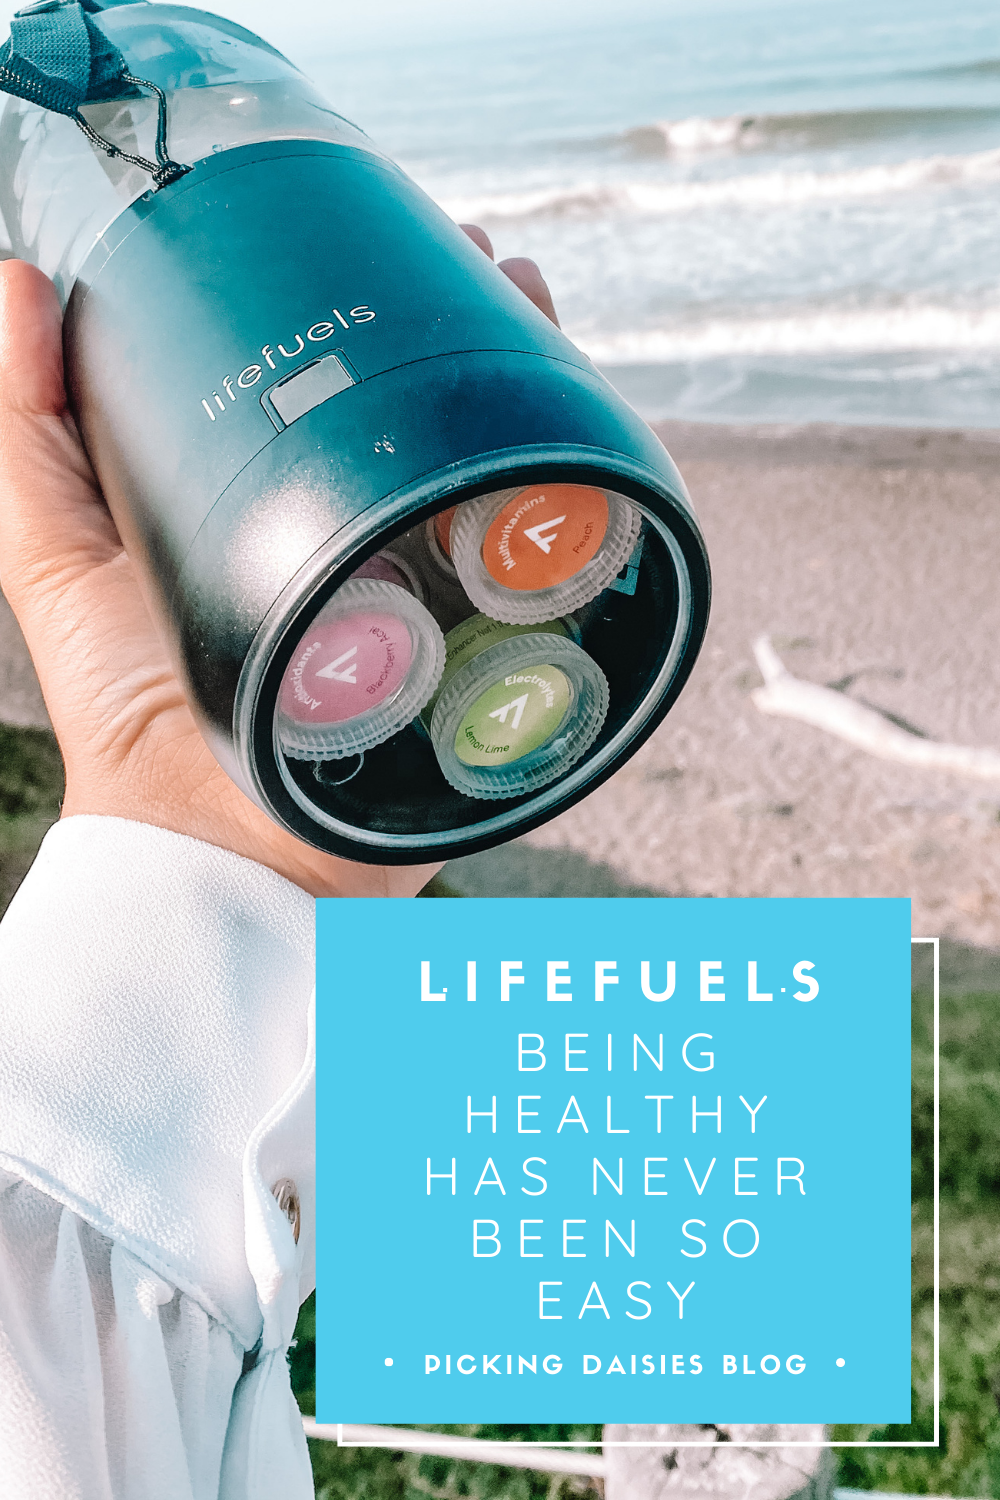 LifeFuels: Being Healthy Has Never Been So Easy